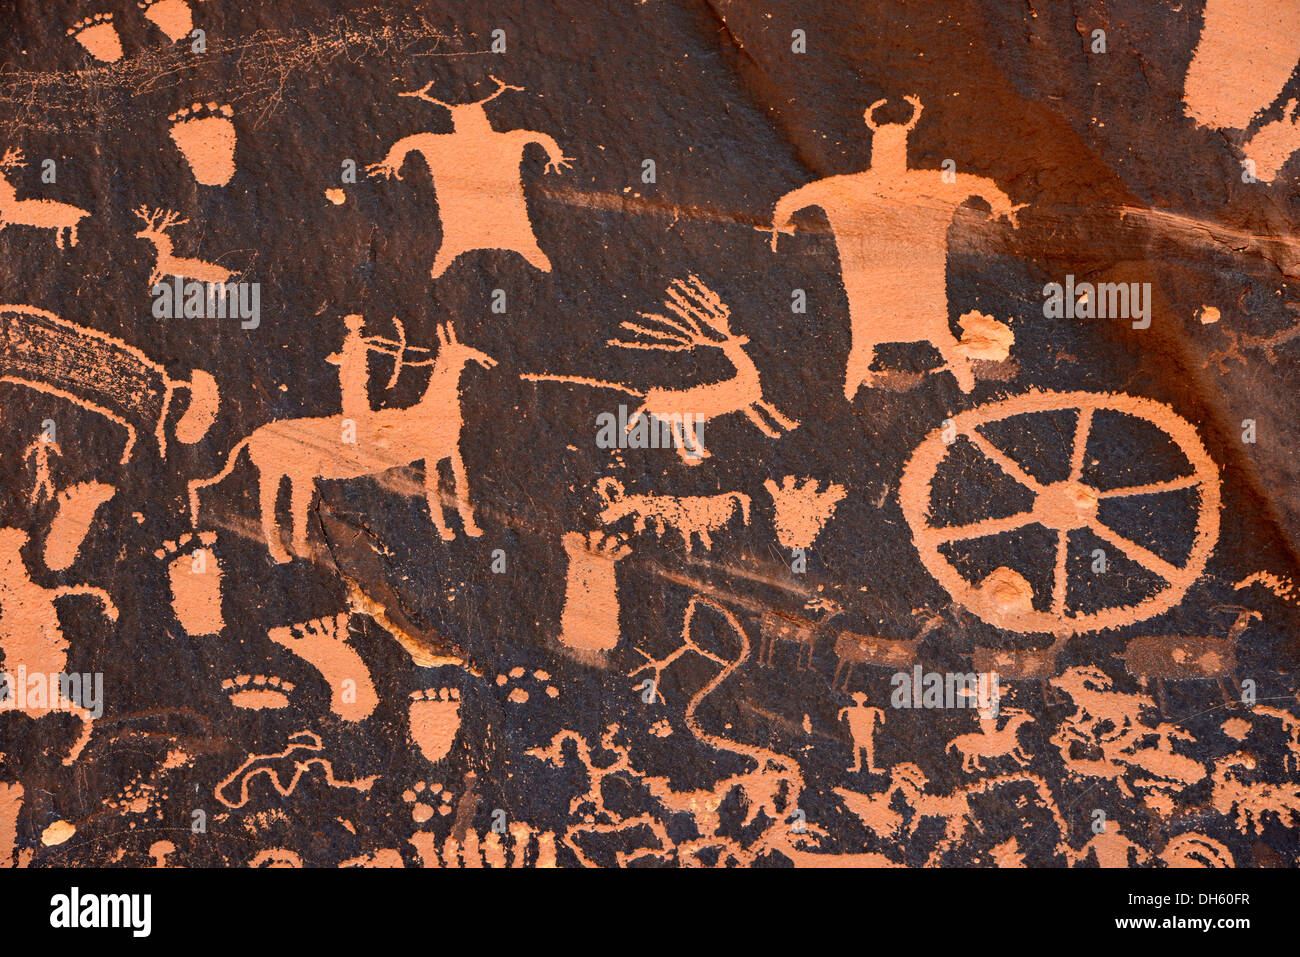 Hunting scene carved into sandstone, petroglyphs, representation of Fremont, Anasazi, Navajo and Anglo-Saxon cultures, Stock Photo